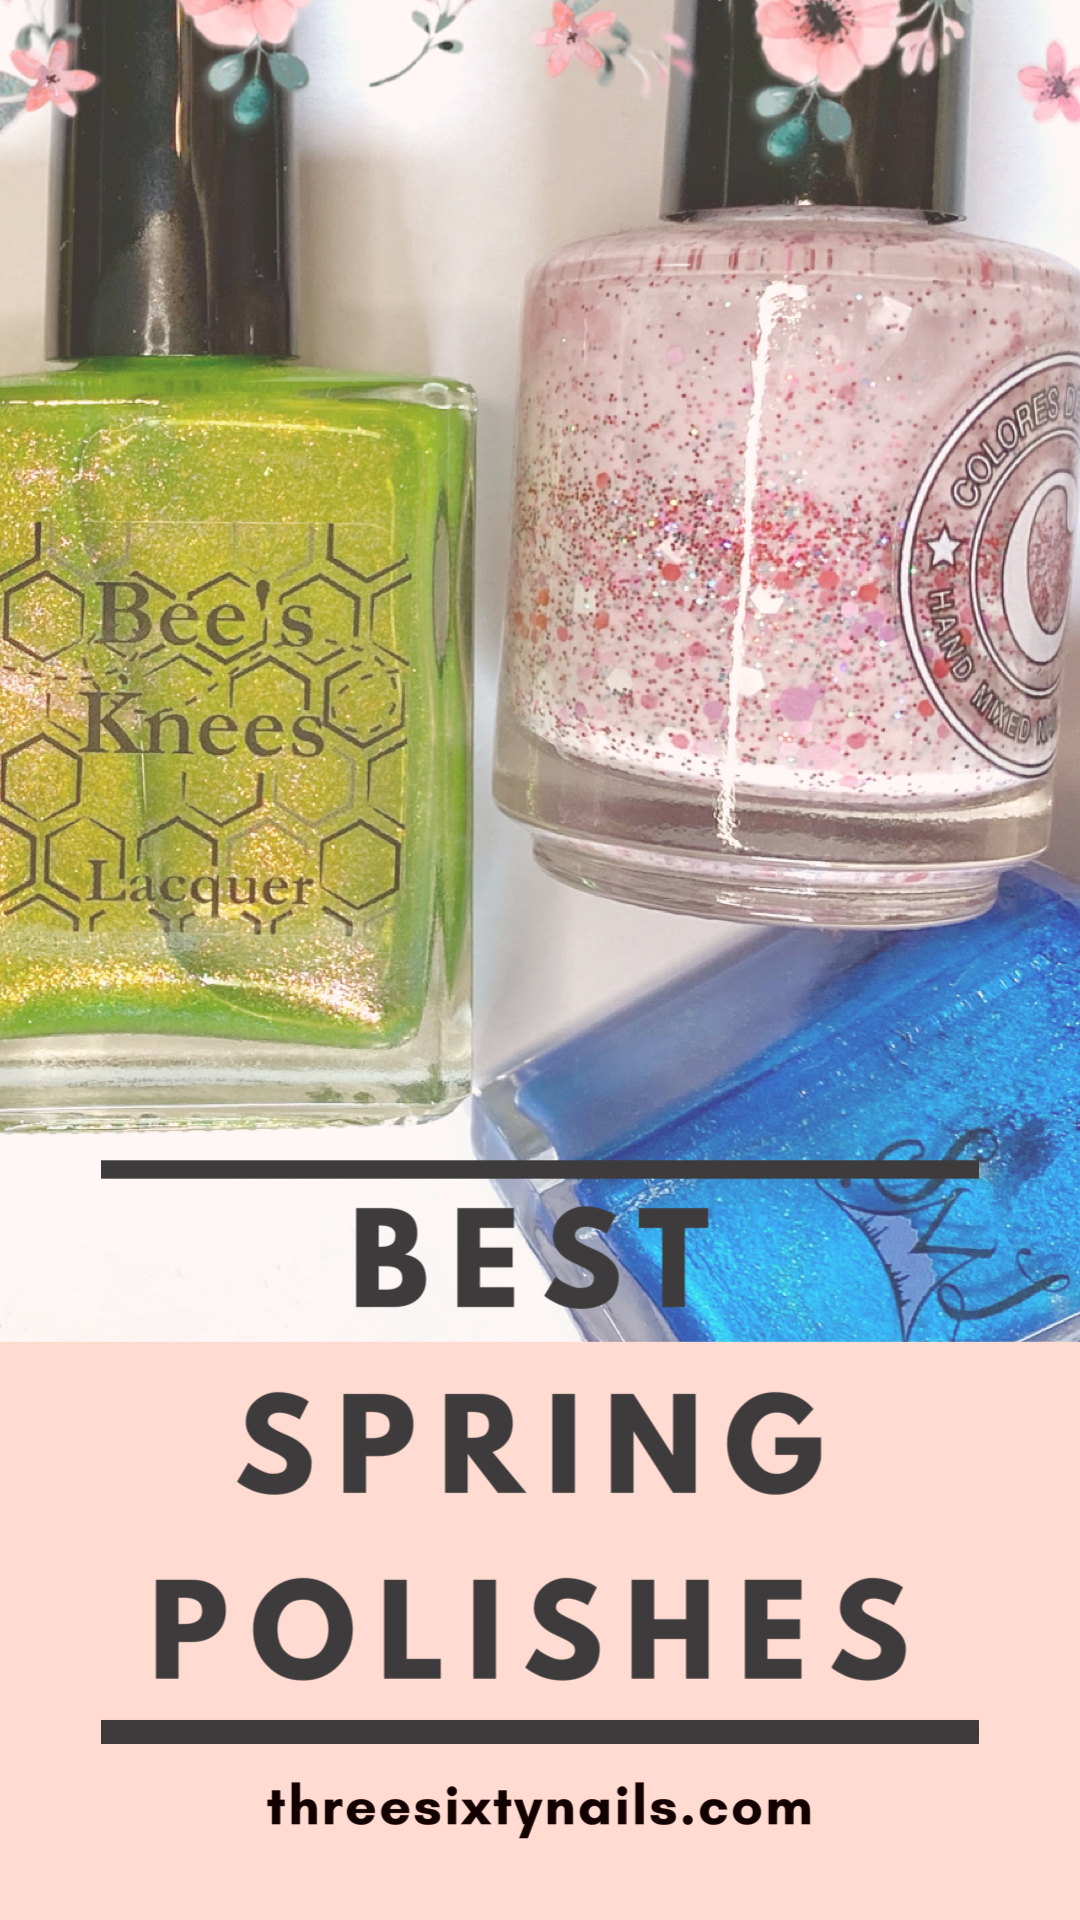 'Tis the season for colorful polish! In this video, I'll be sharing six indie-brand favorites of mine. Check it out for some spring-y recommendations! 🌸🌷 #springnails #springnailpolish #nailpolish #nailart #nailblogger #springstyle